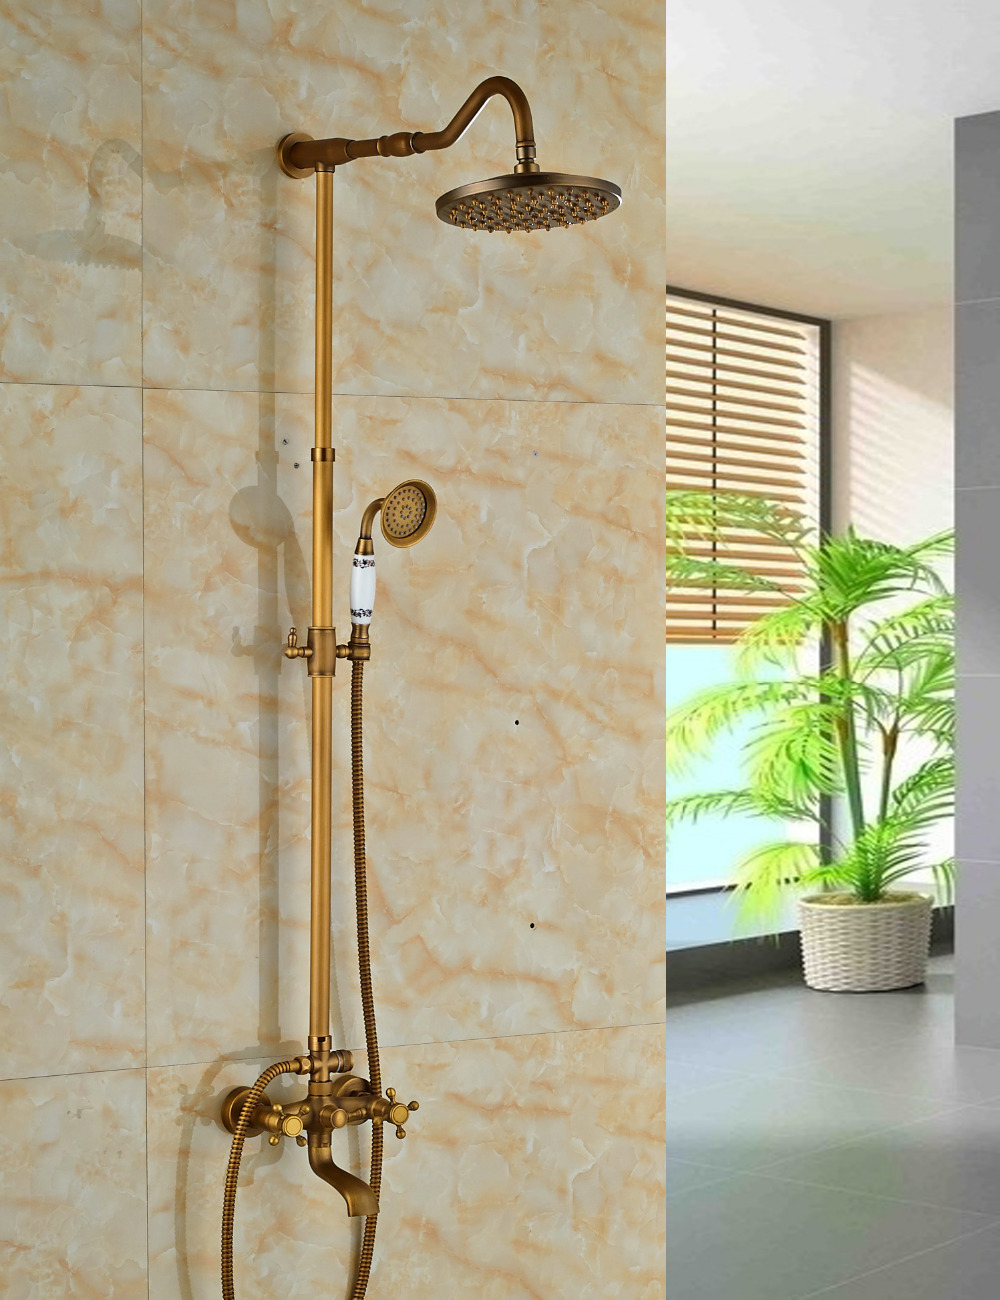 Scudders Antique Brass Finish Wall Mounted RainFall Shower Set ...